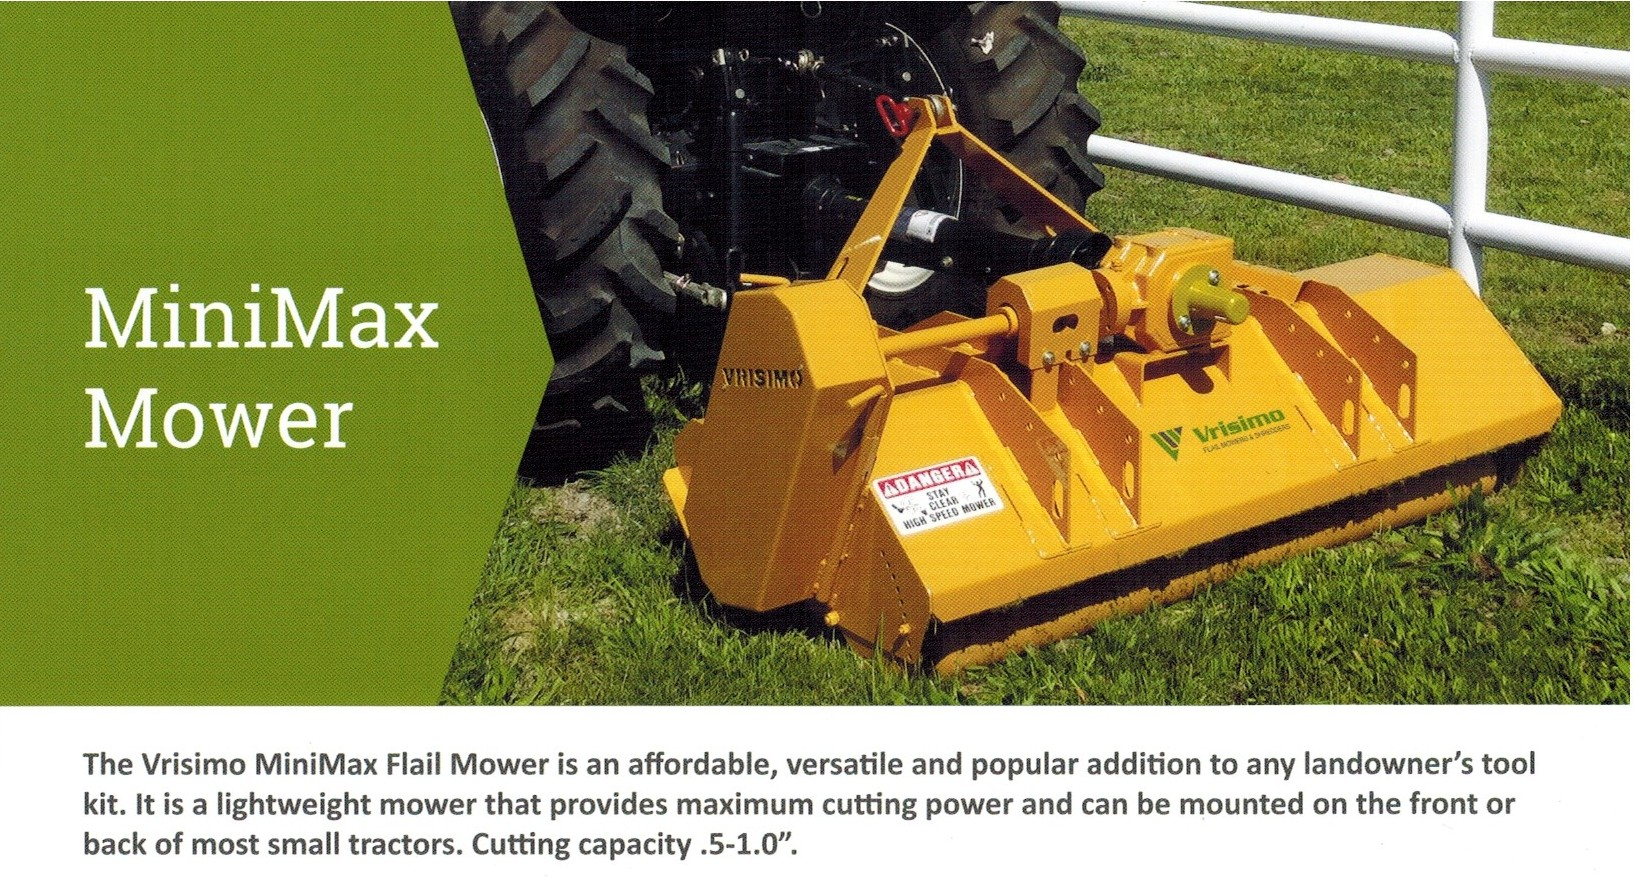 MiniMax Series Vrisimo Flail Mower For Small Tractors From 18-22 HP